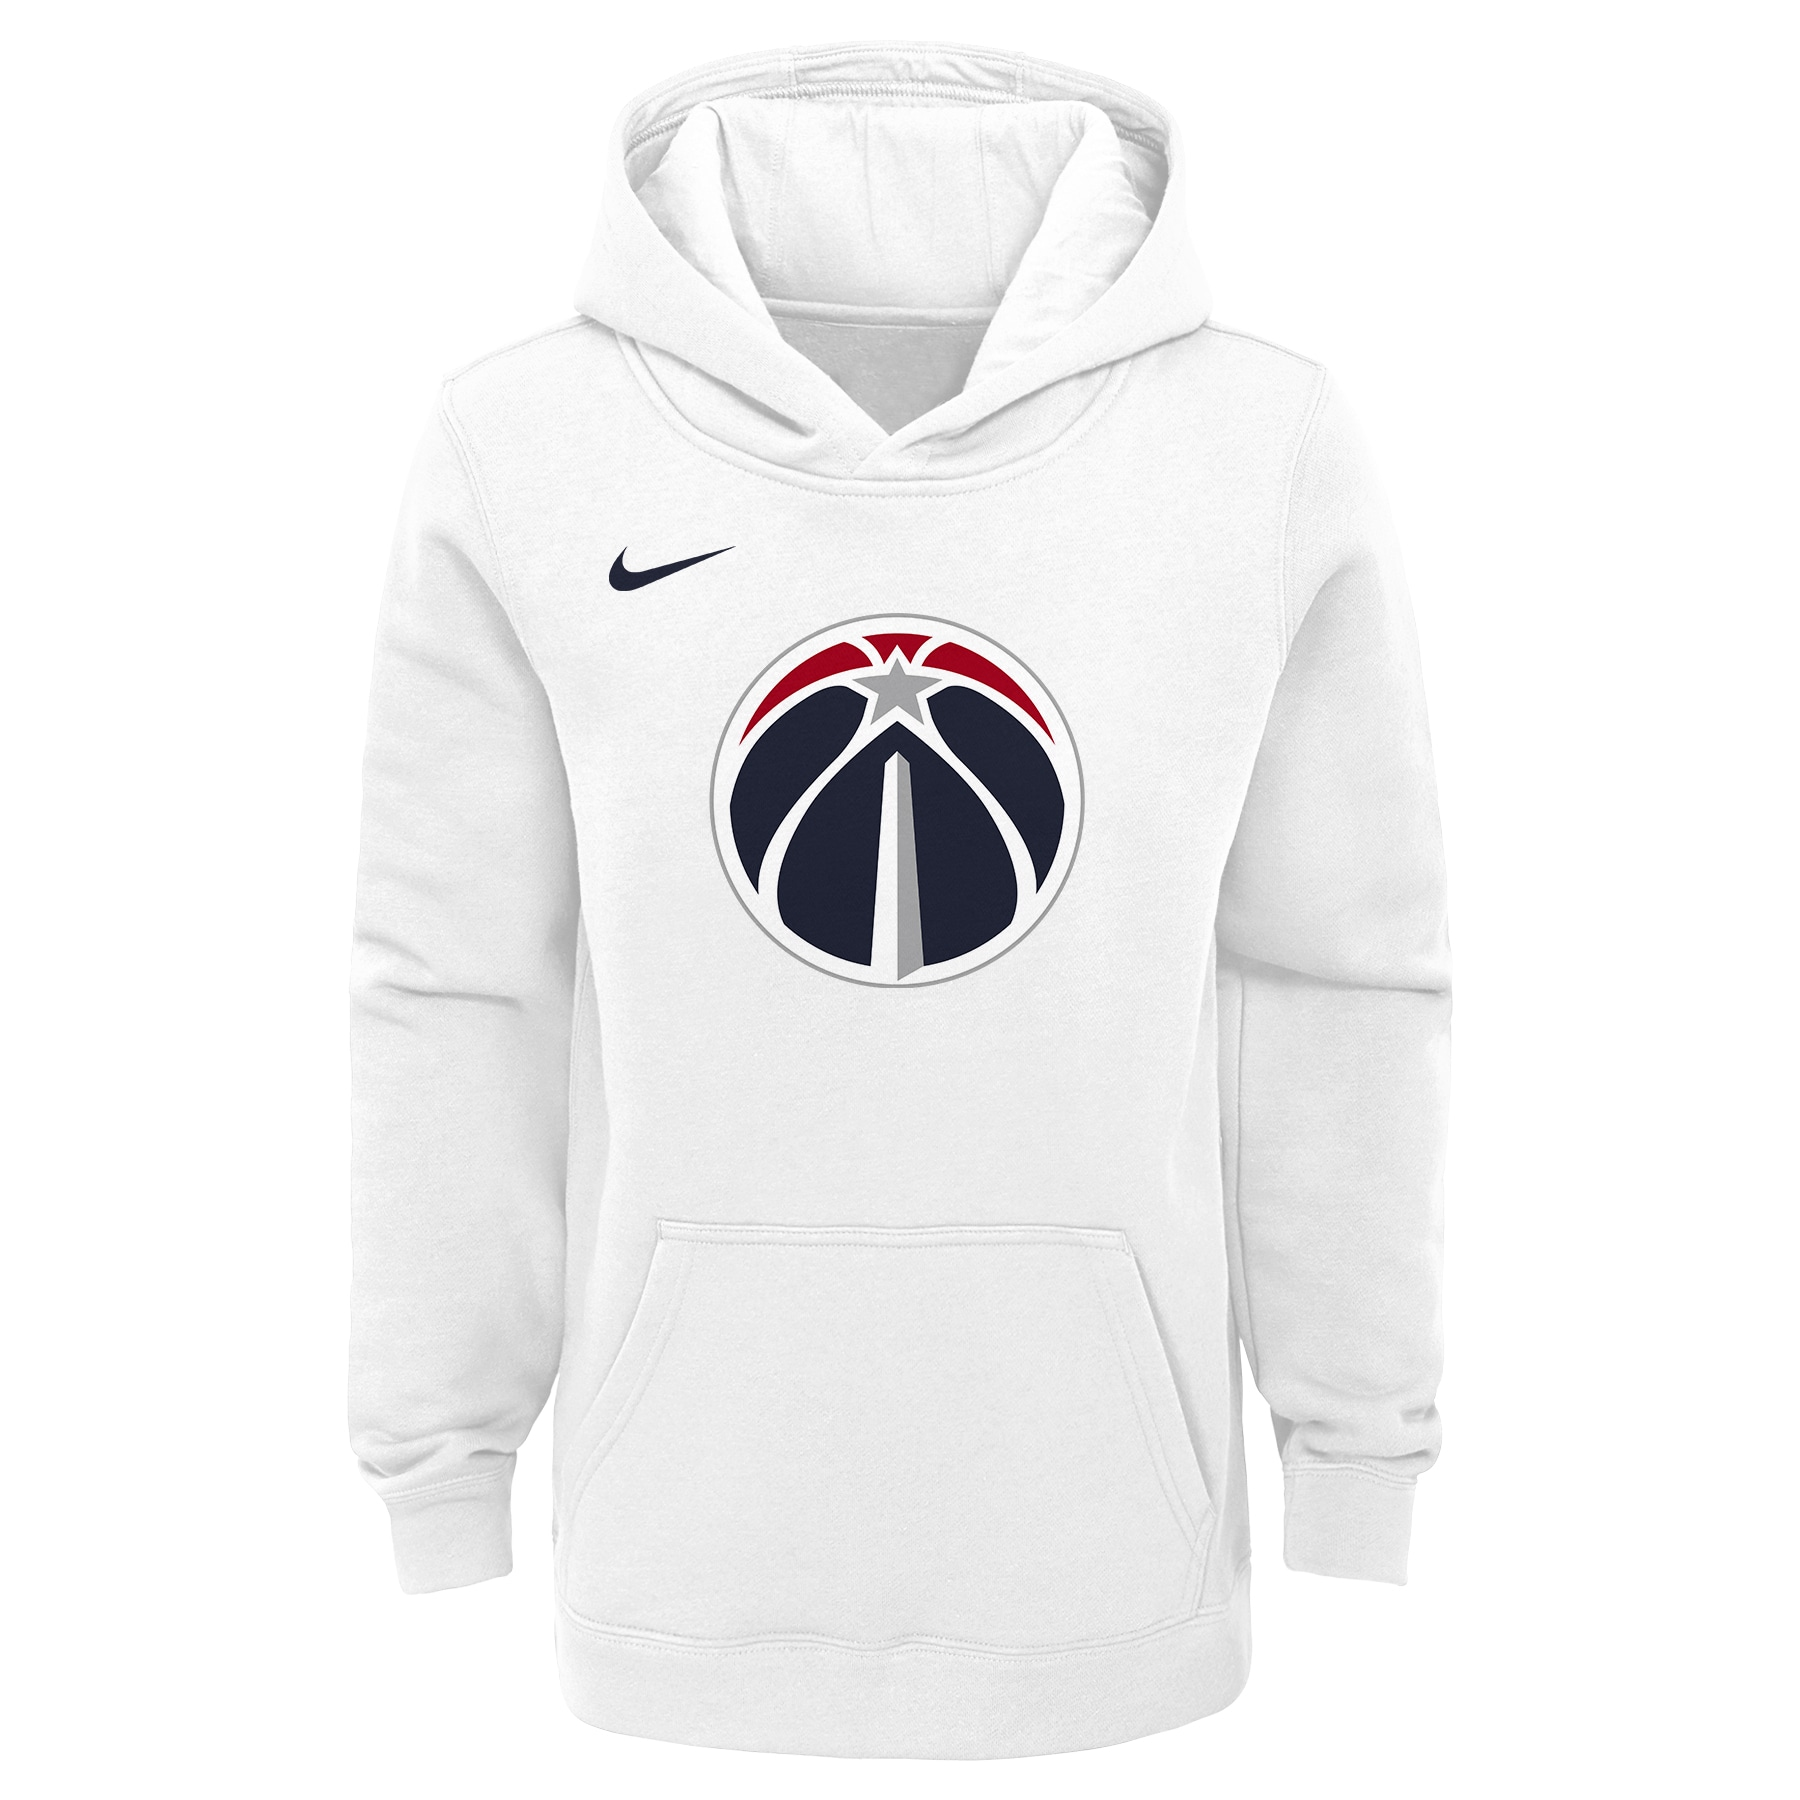 Washington Wizards Nike Youth 2019/20 City Edition Club Pullover Hoodie - White